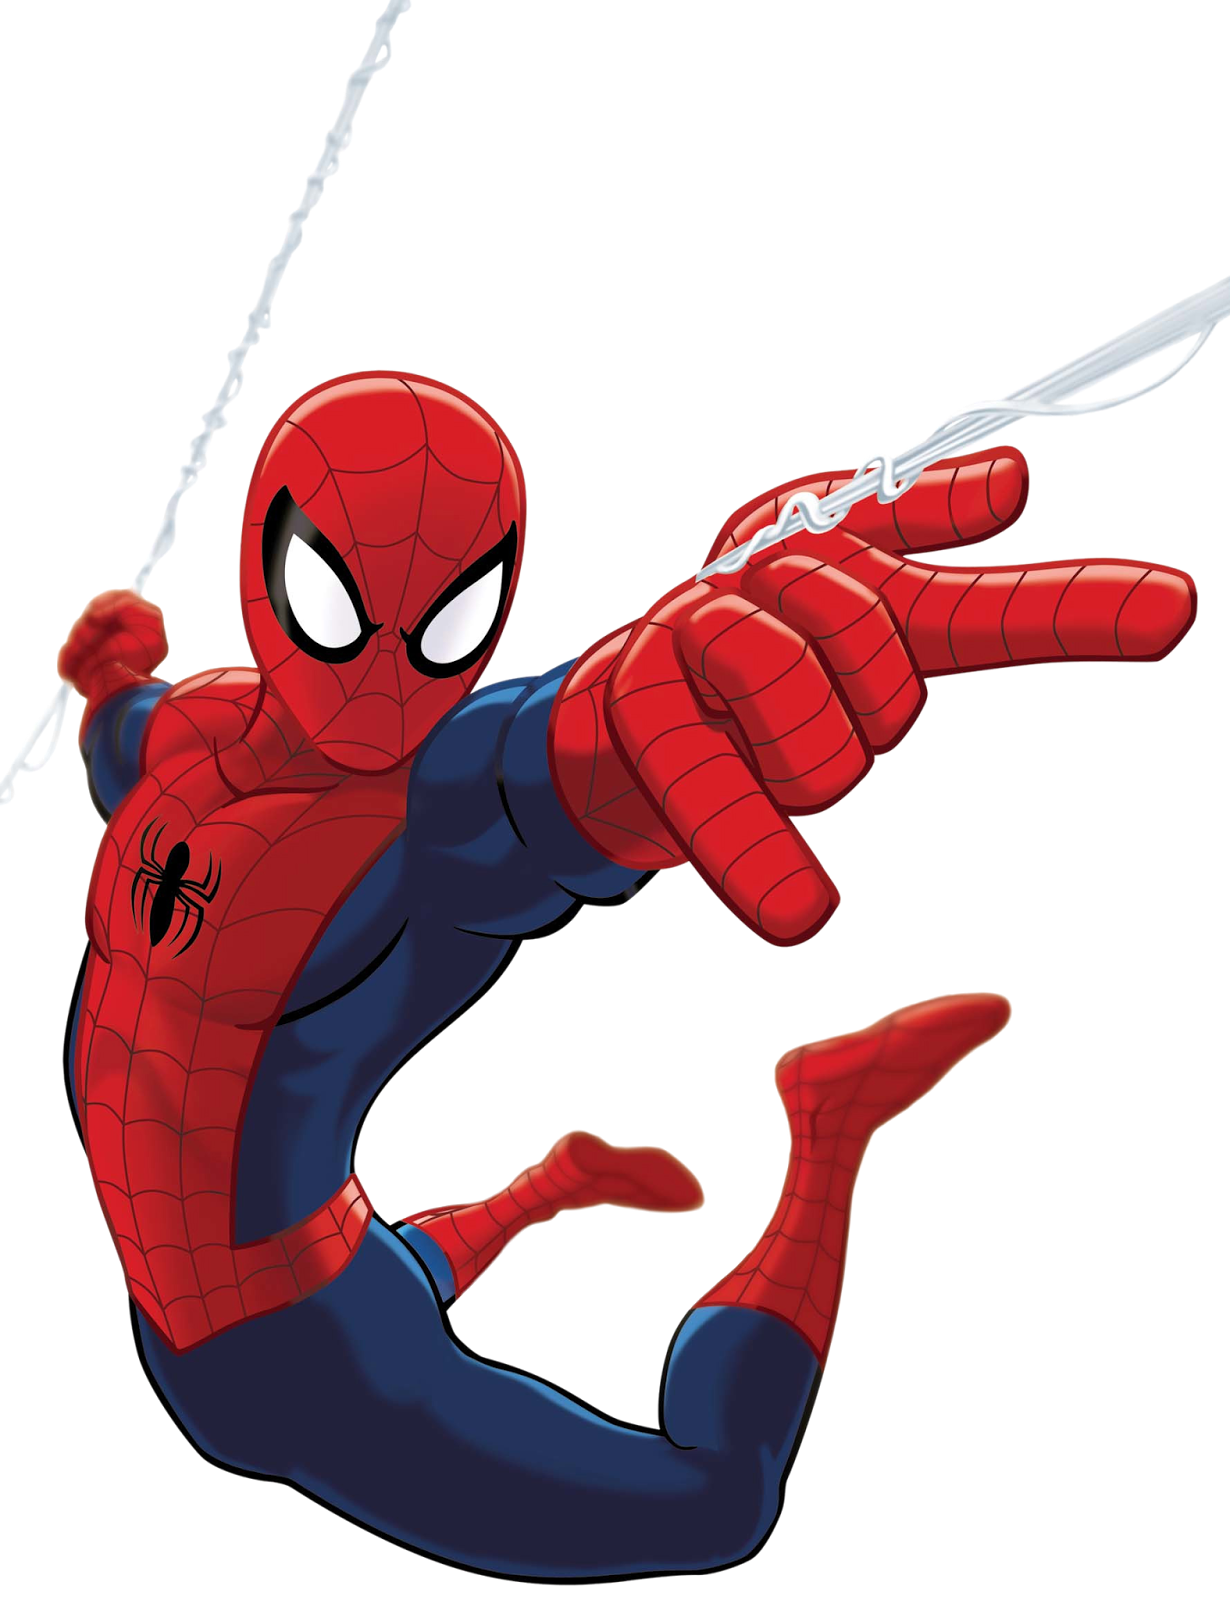 my heroe comic spiderman visit to grab an amazing super hero rh pinterest ca spiderman clipart black and white spiderman clip art free